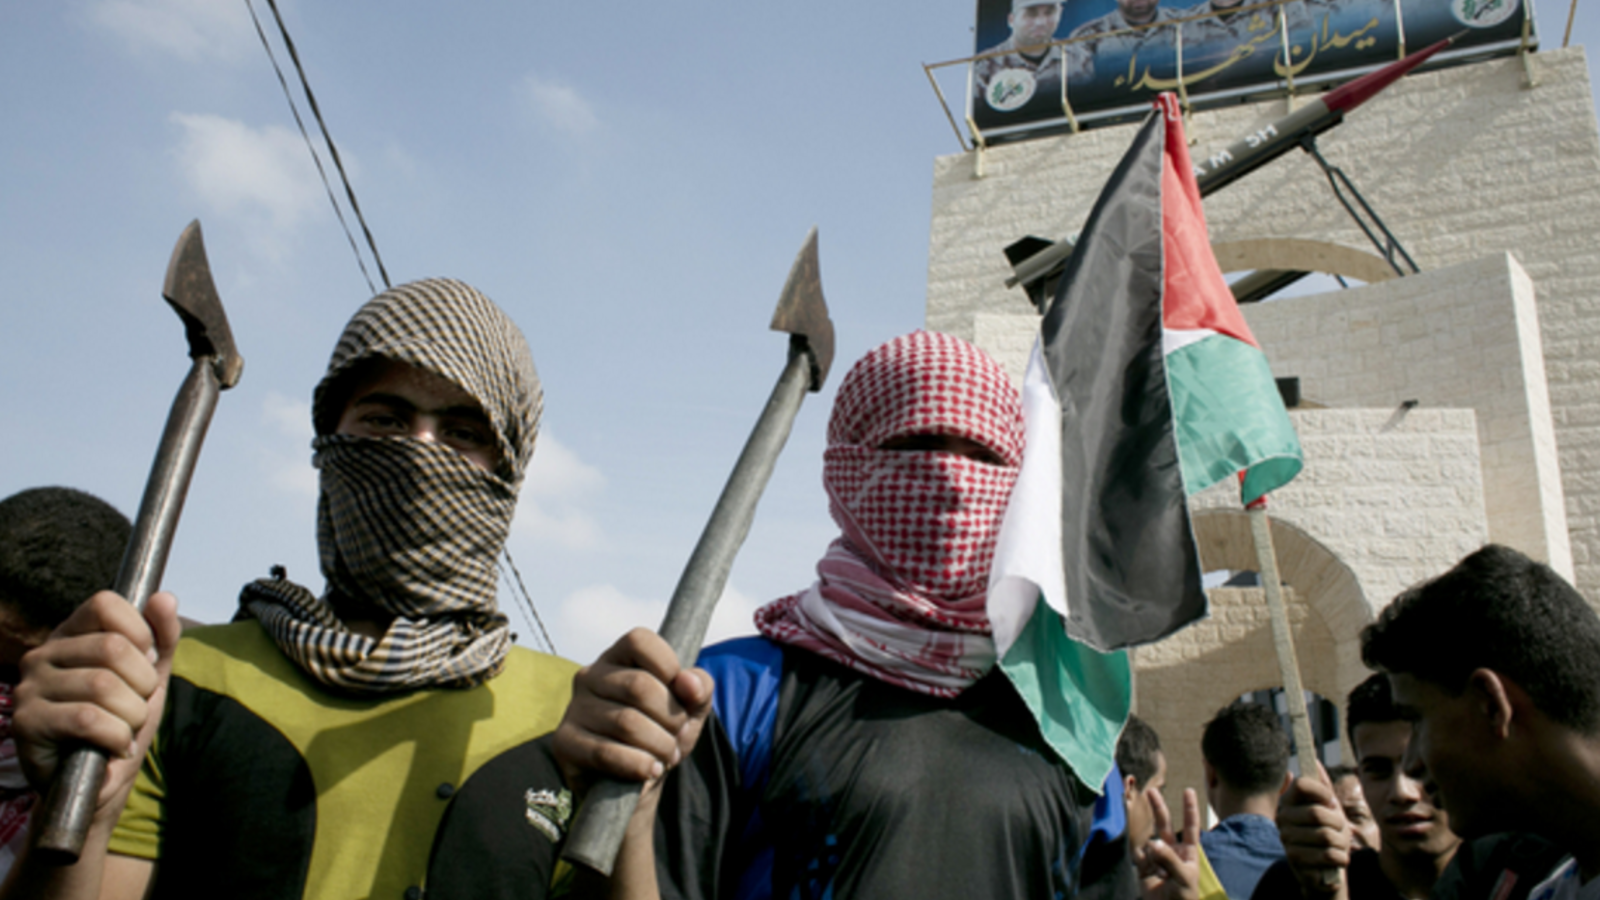 Palestinian students in checkered keffiyehs holding axes. (photo: AFP)